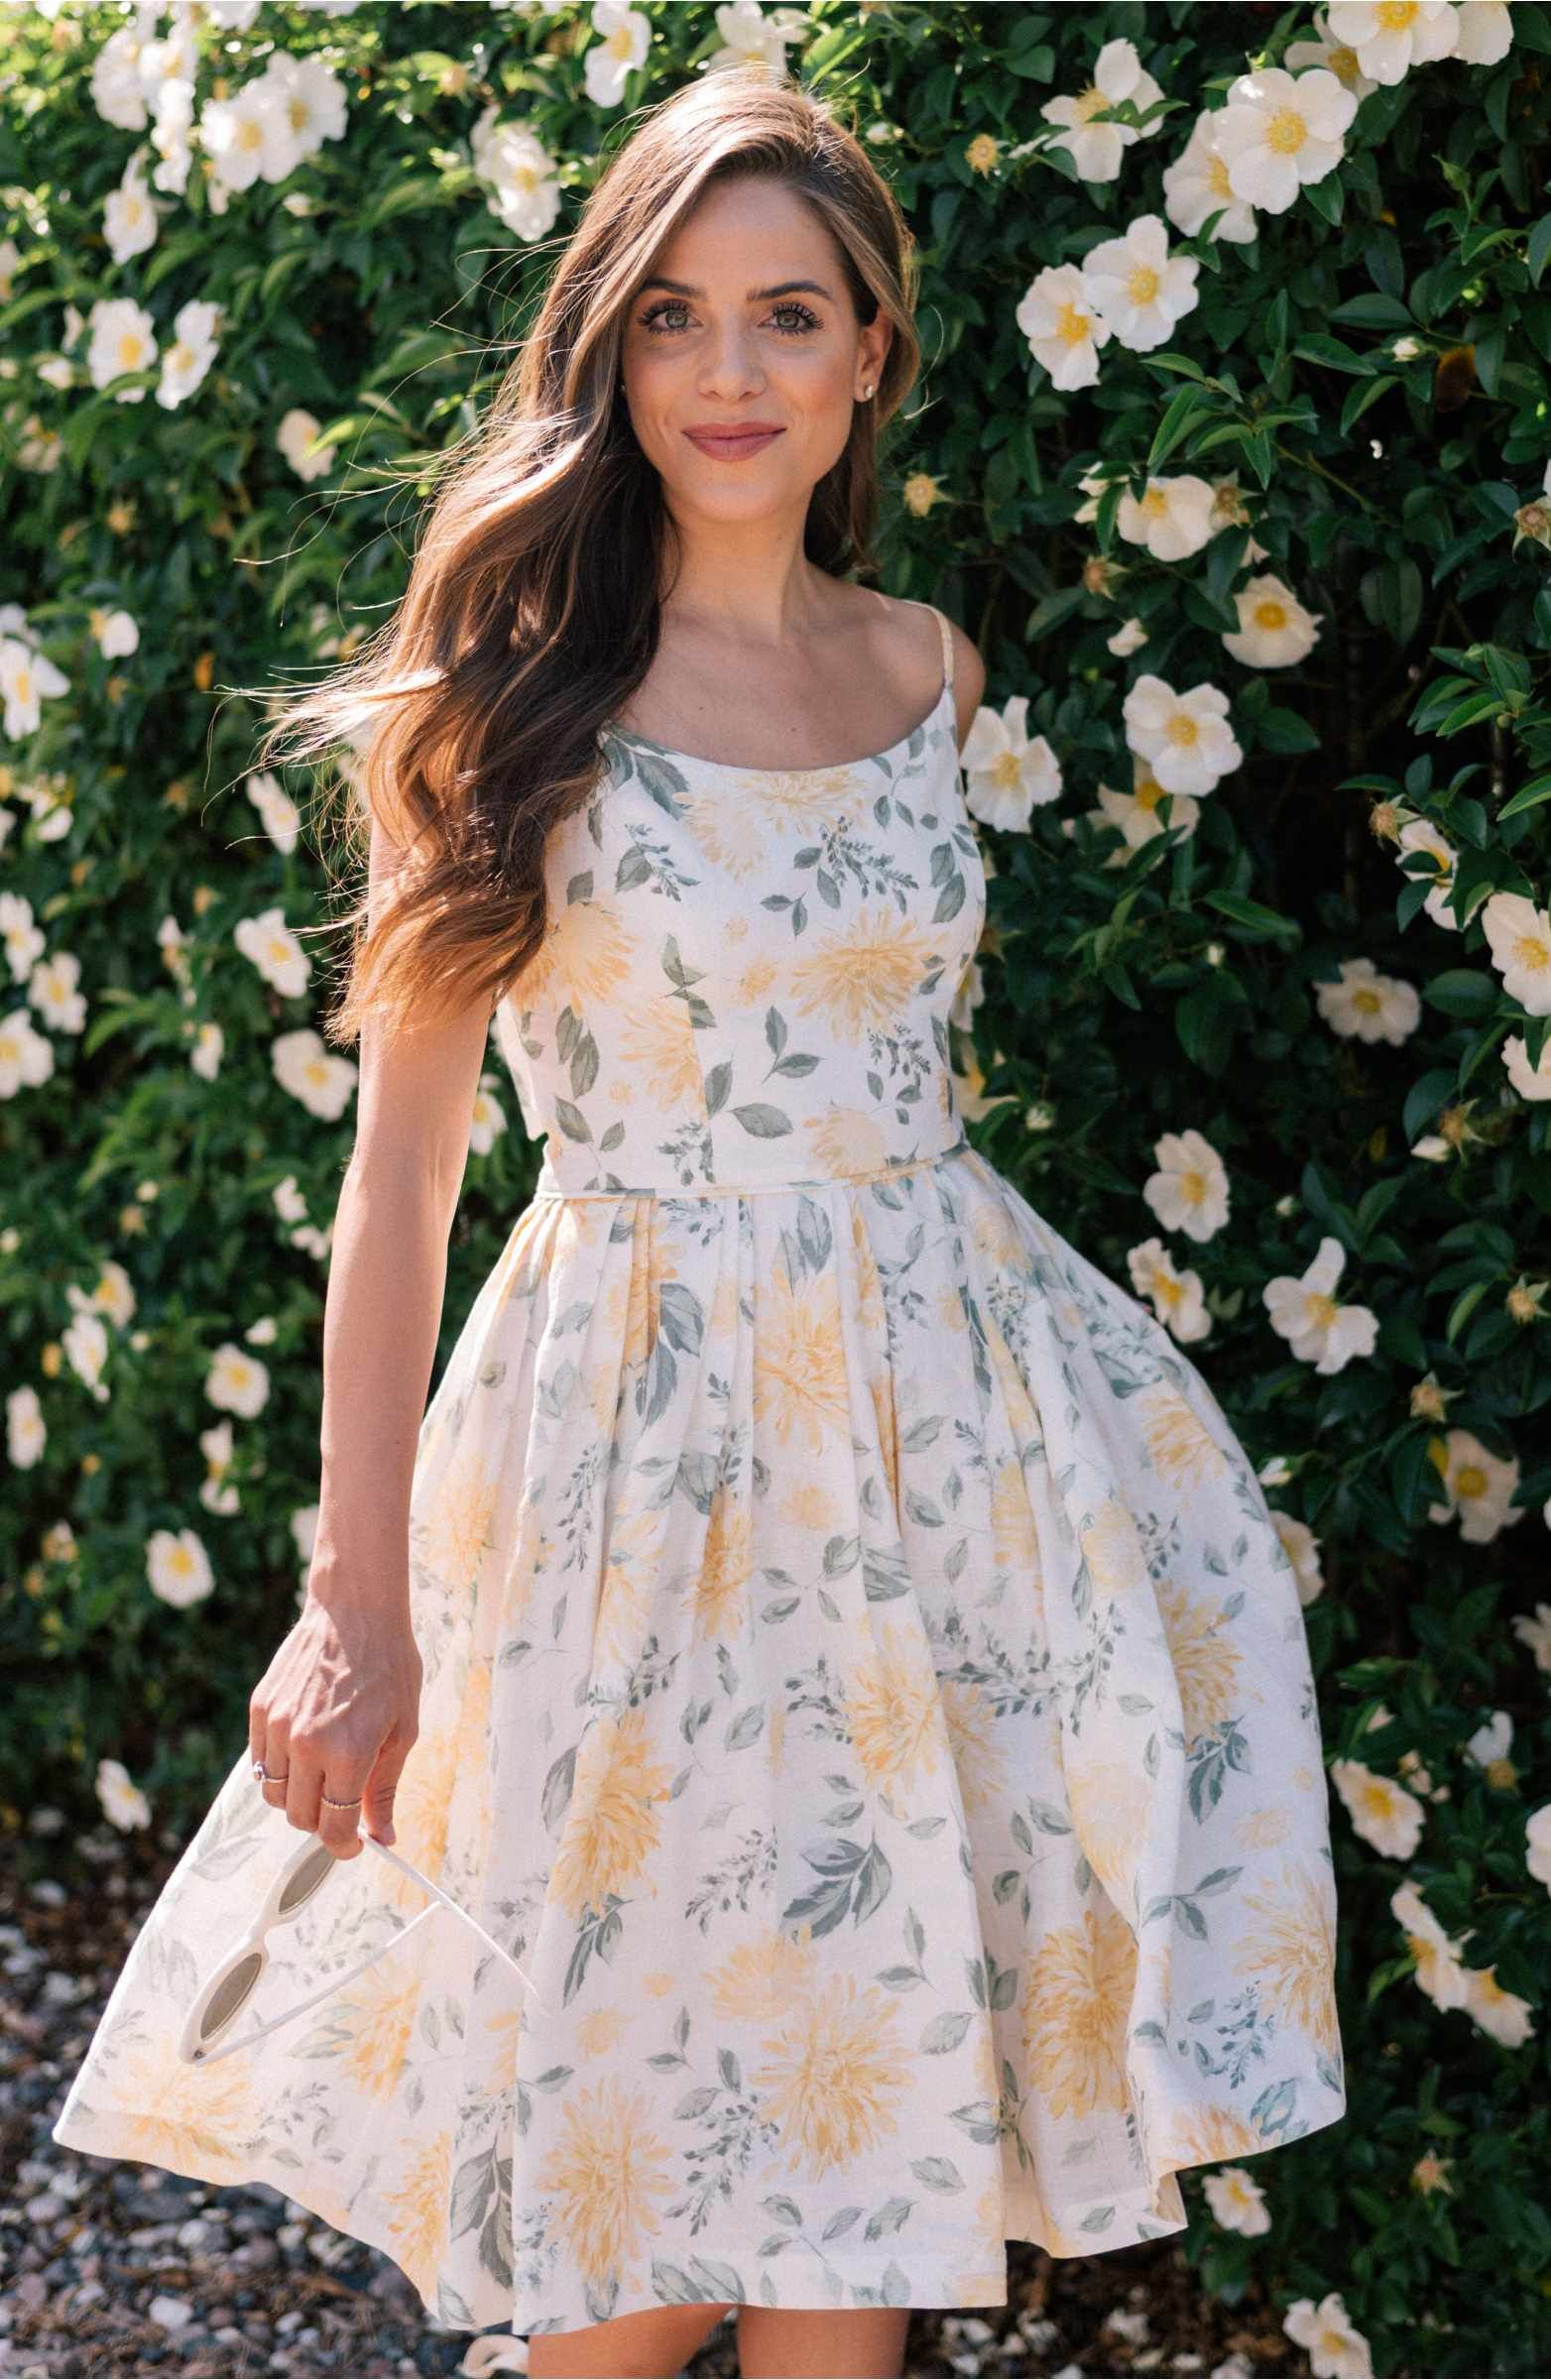 c828c97d4a4 Main Image - Gal Meets Glam Collection Abigail Painted Aster Fit   Flare  Sundress